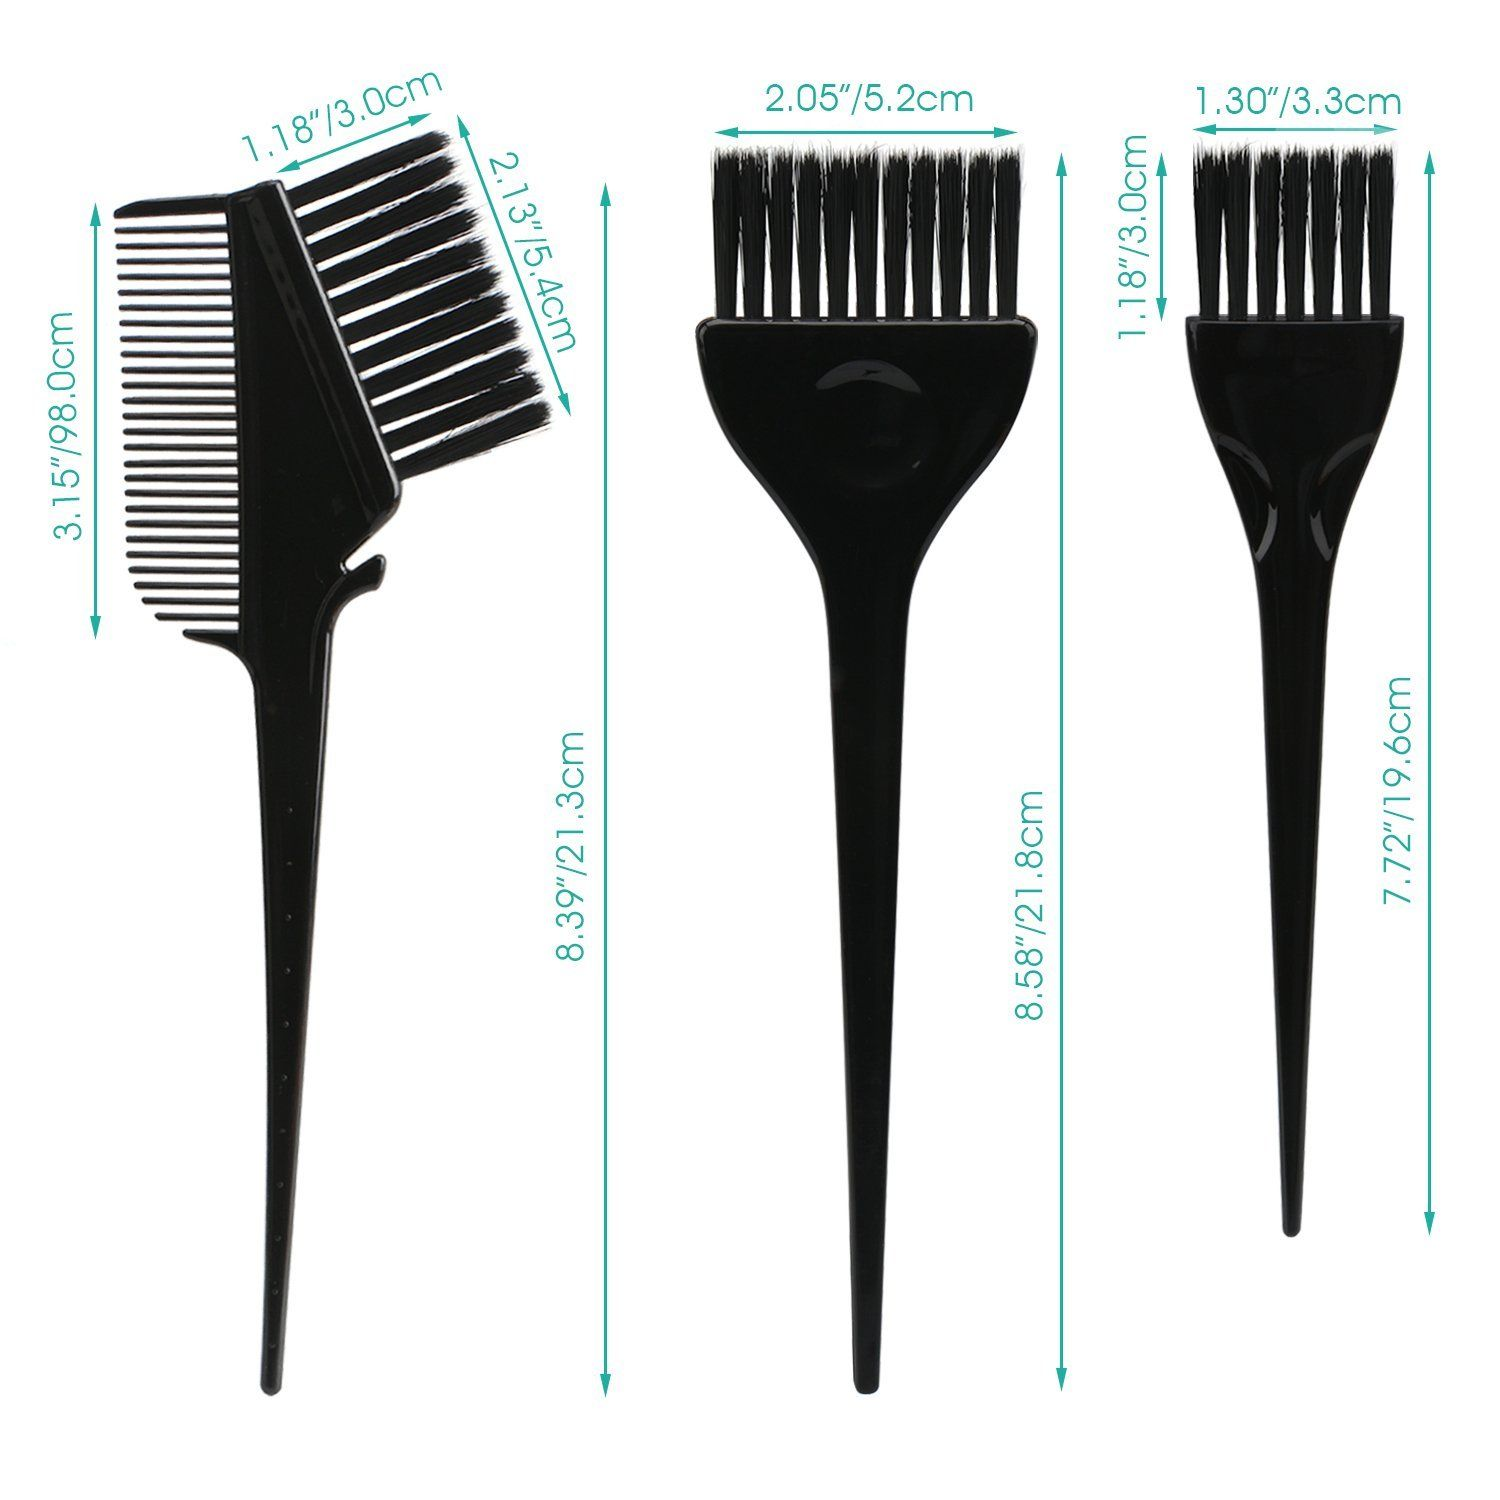 7pcs Feather Bristles Hair Color Brushes On Hair Dye Diy